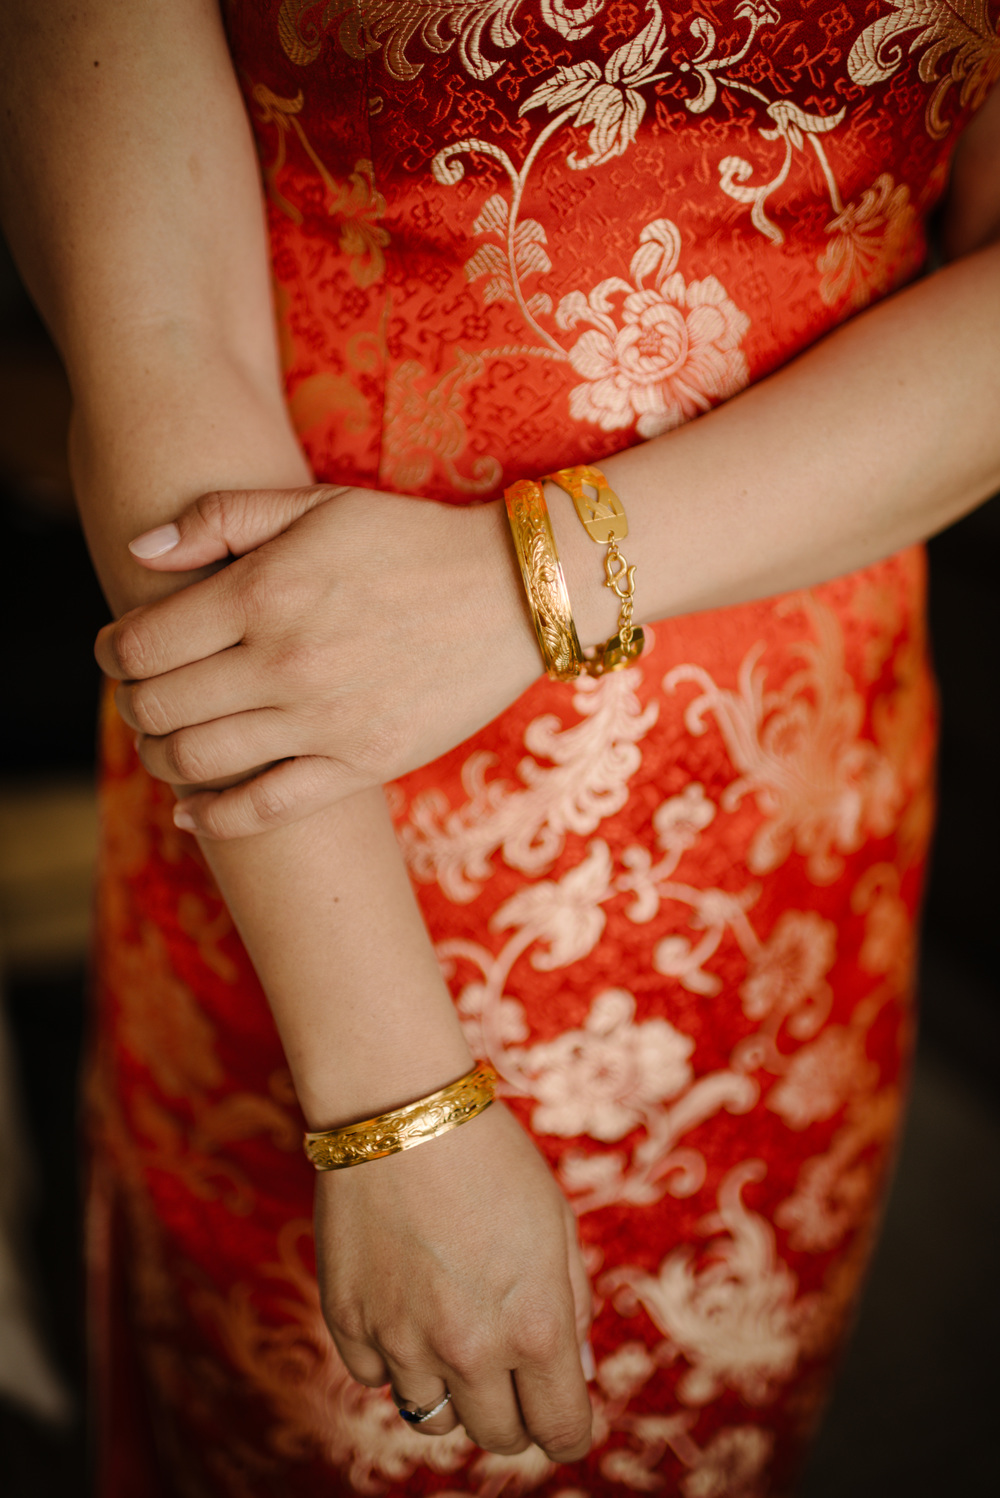 Detail photographs of bride's Cheongsam red wedding dress, Chinese tradition